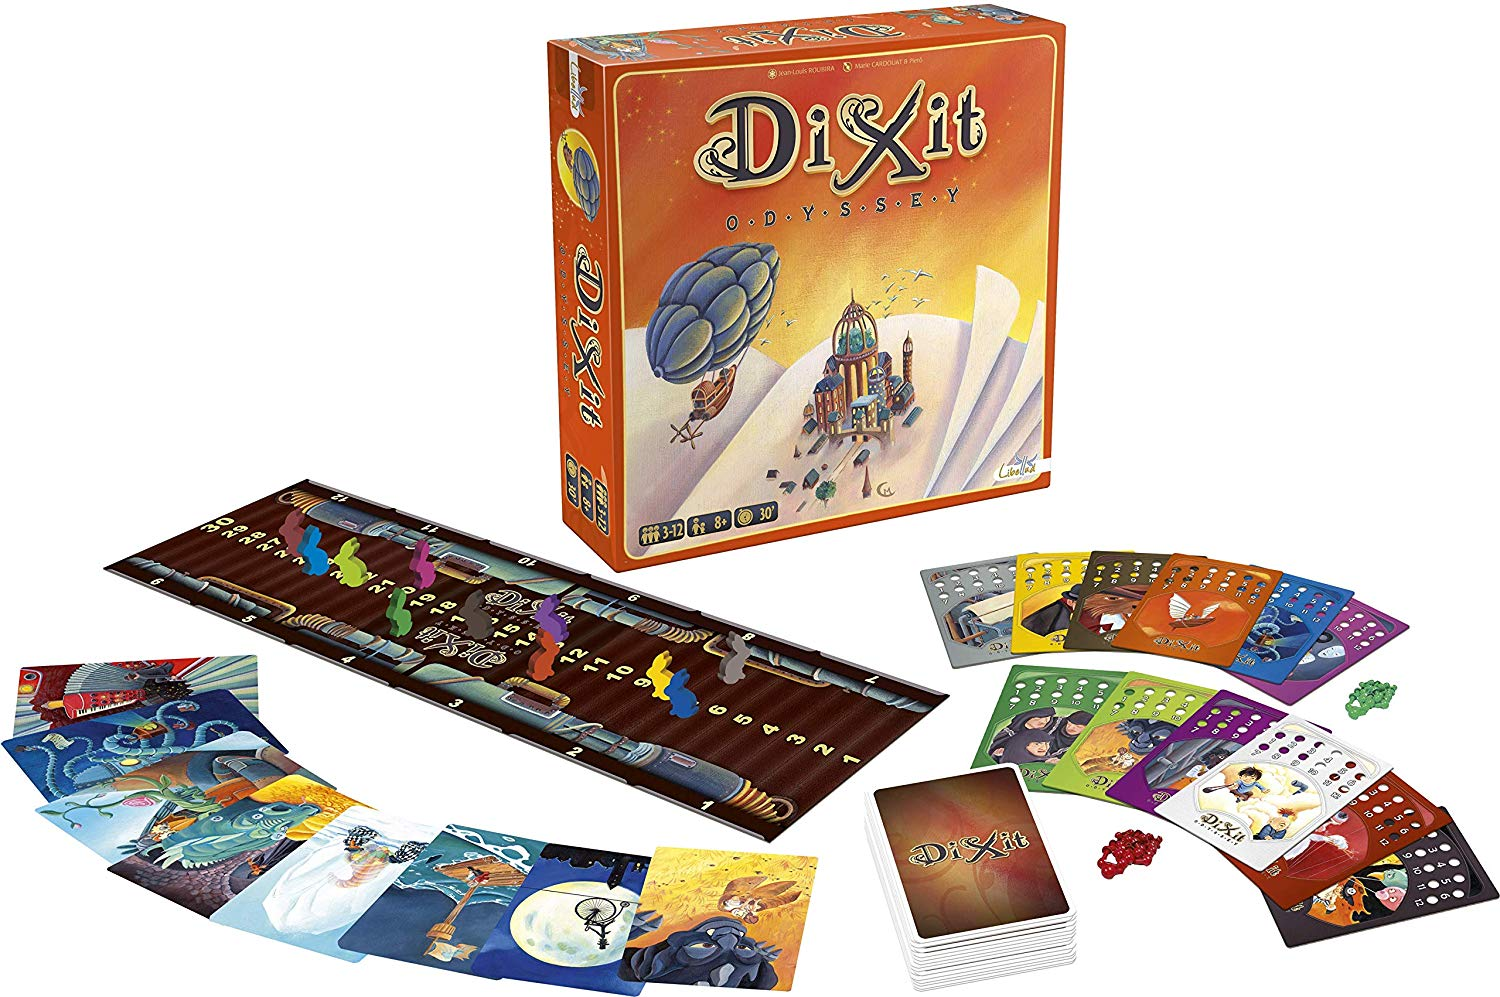 Dixit + Odyssey Expansion